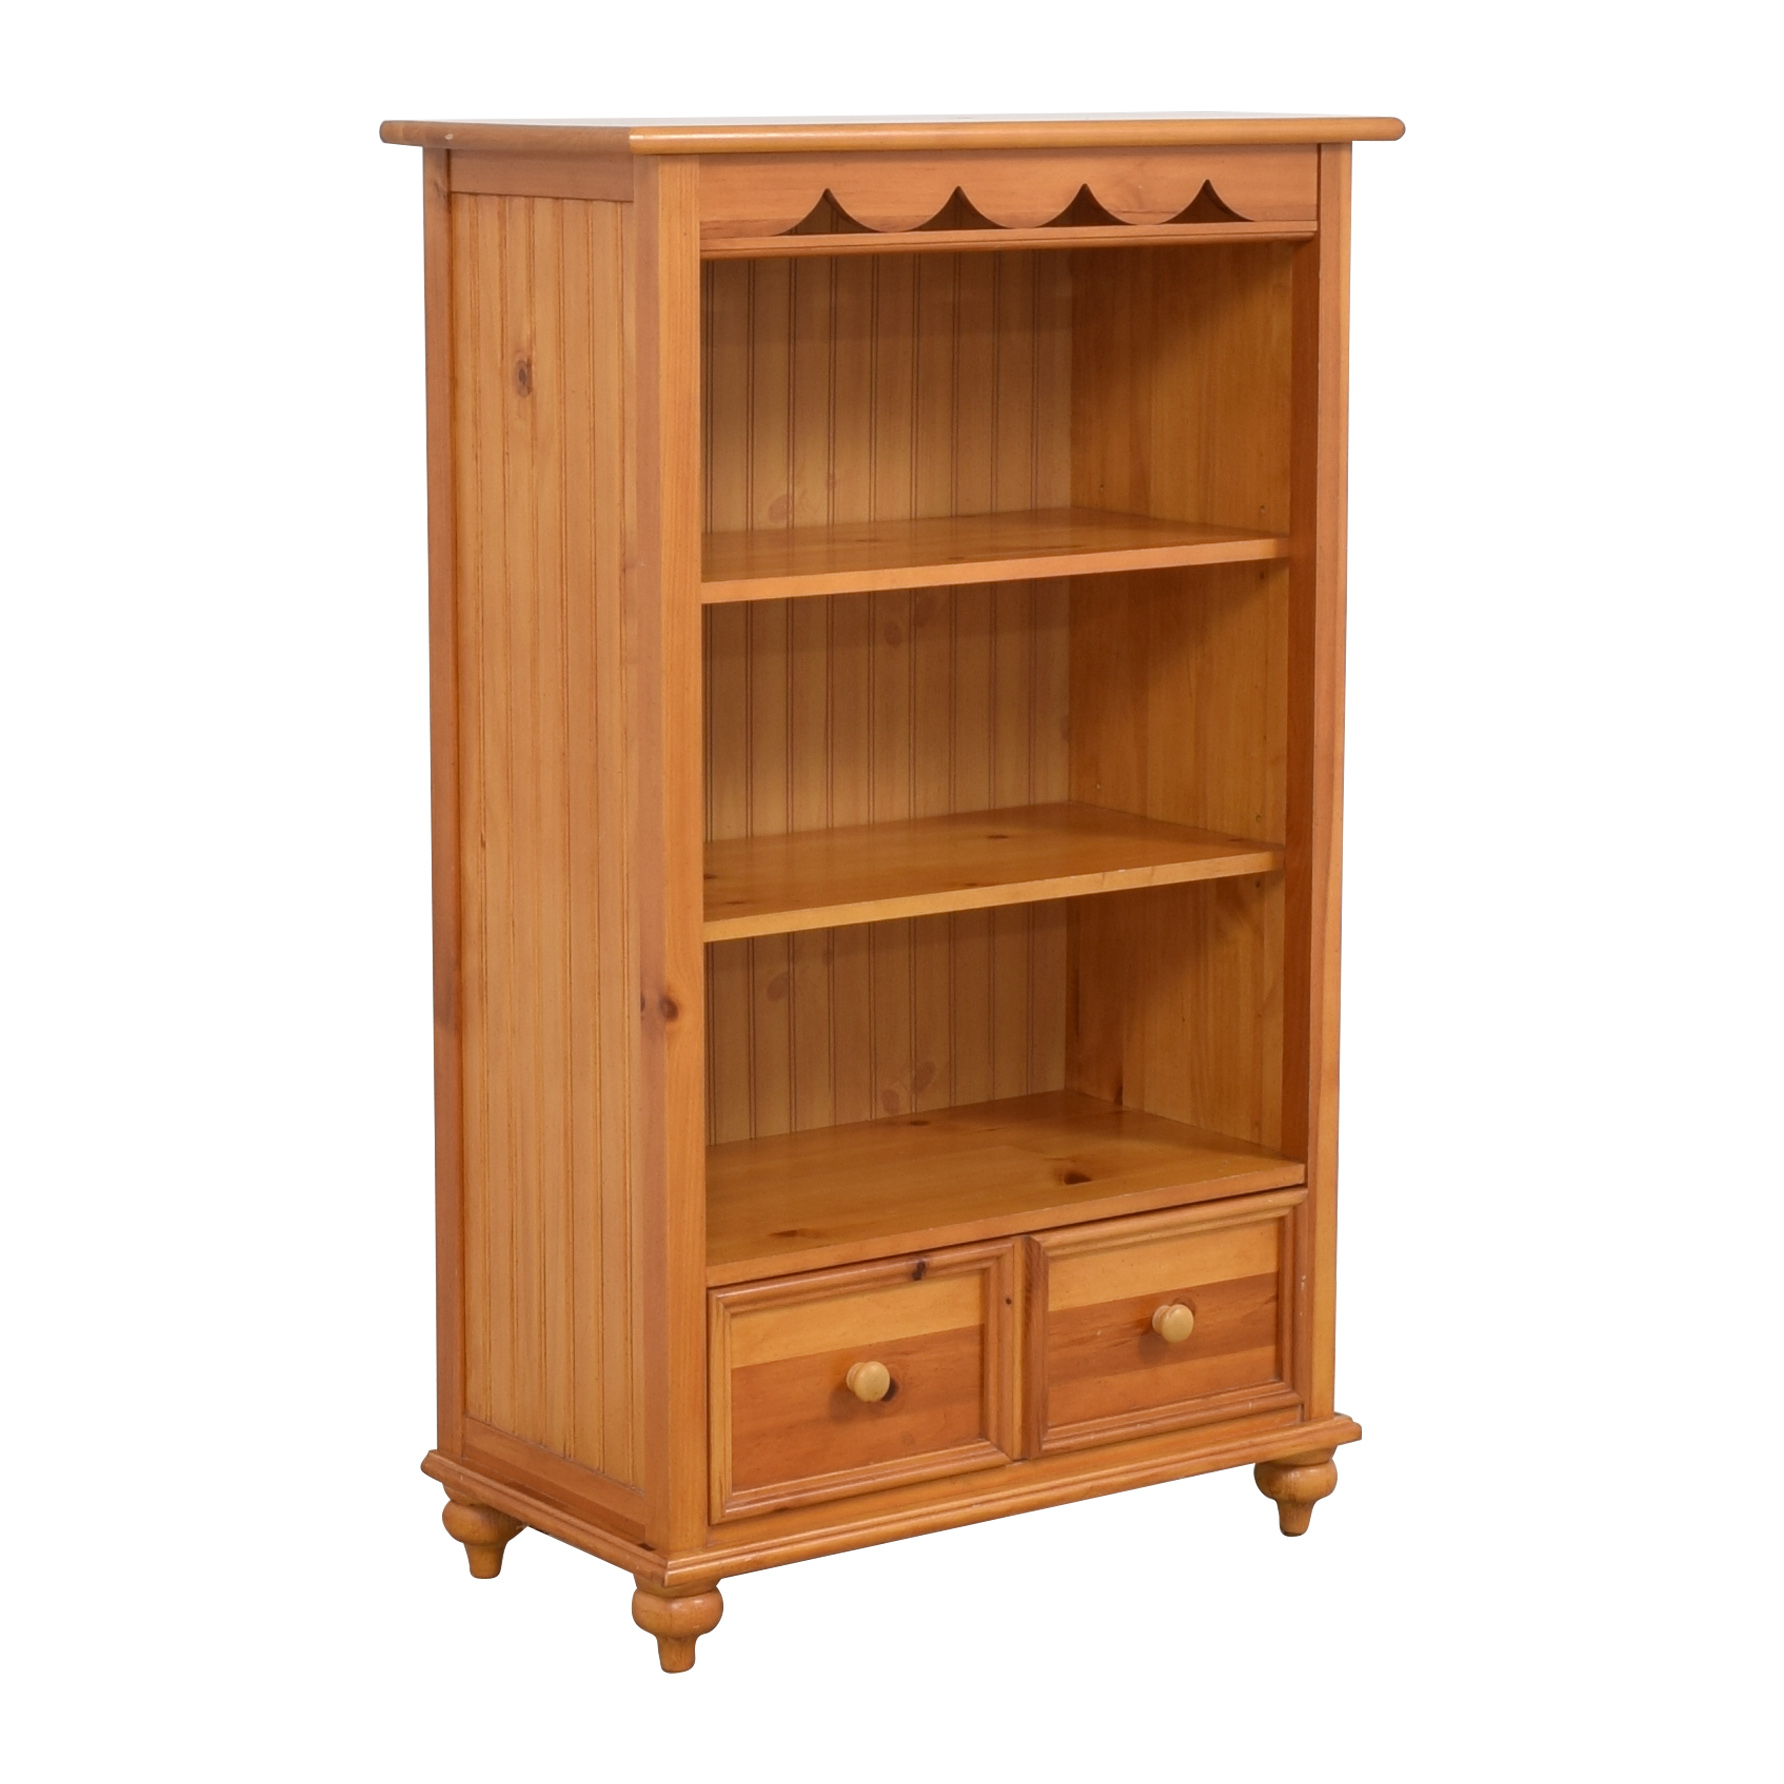 Stanley Furniture Bookcase / Bookcases & Shelving